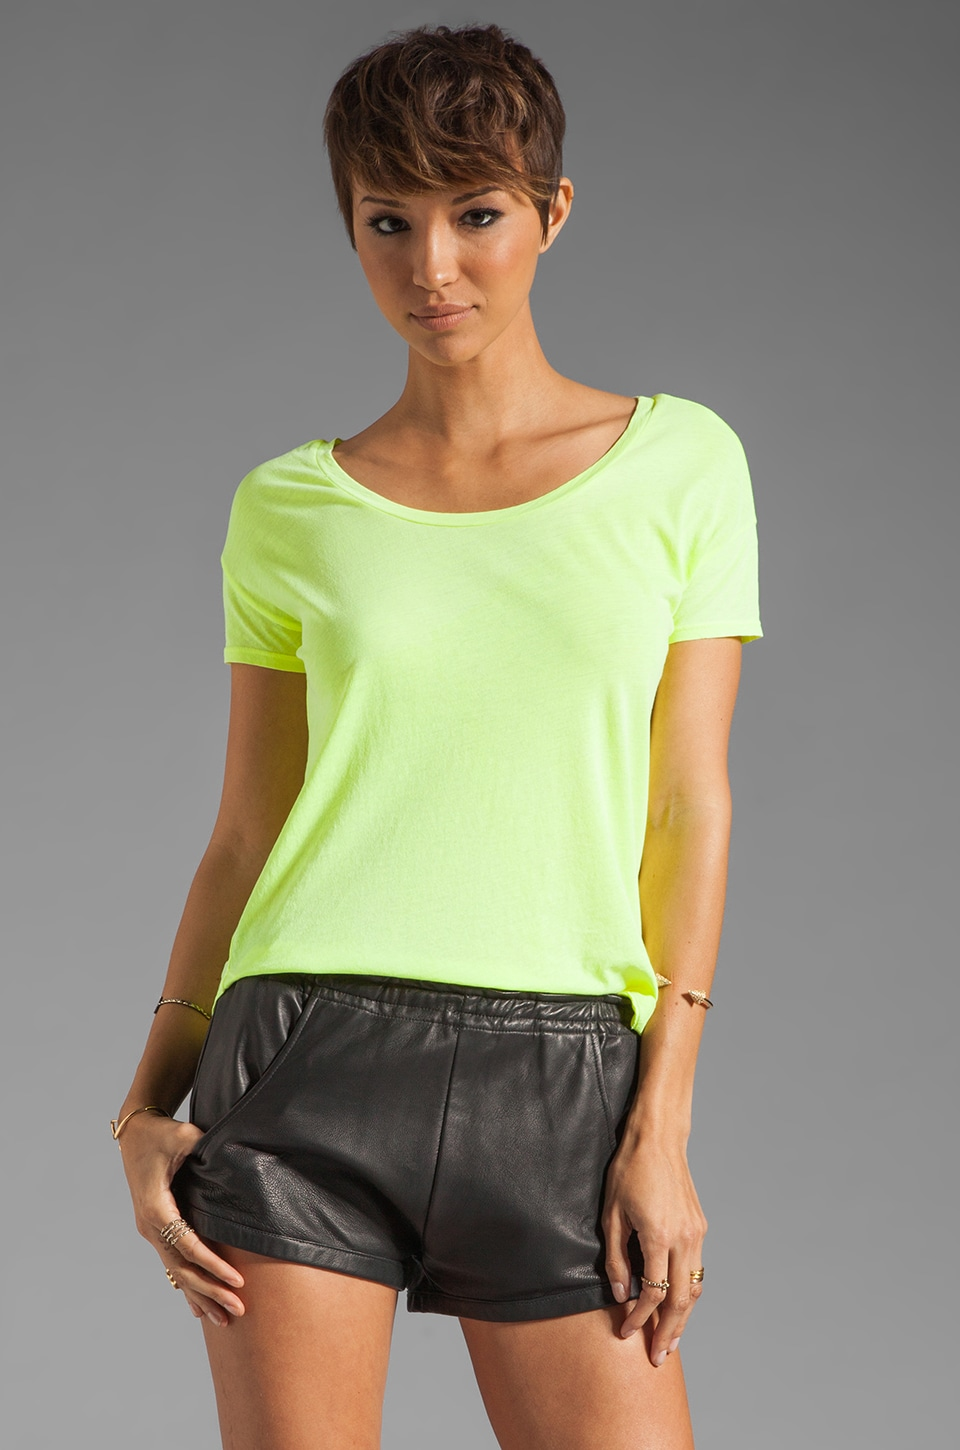 Splendid Vintage Whisper Tee in Neon Yellow